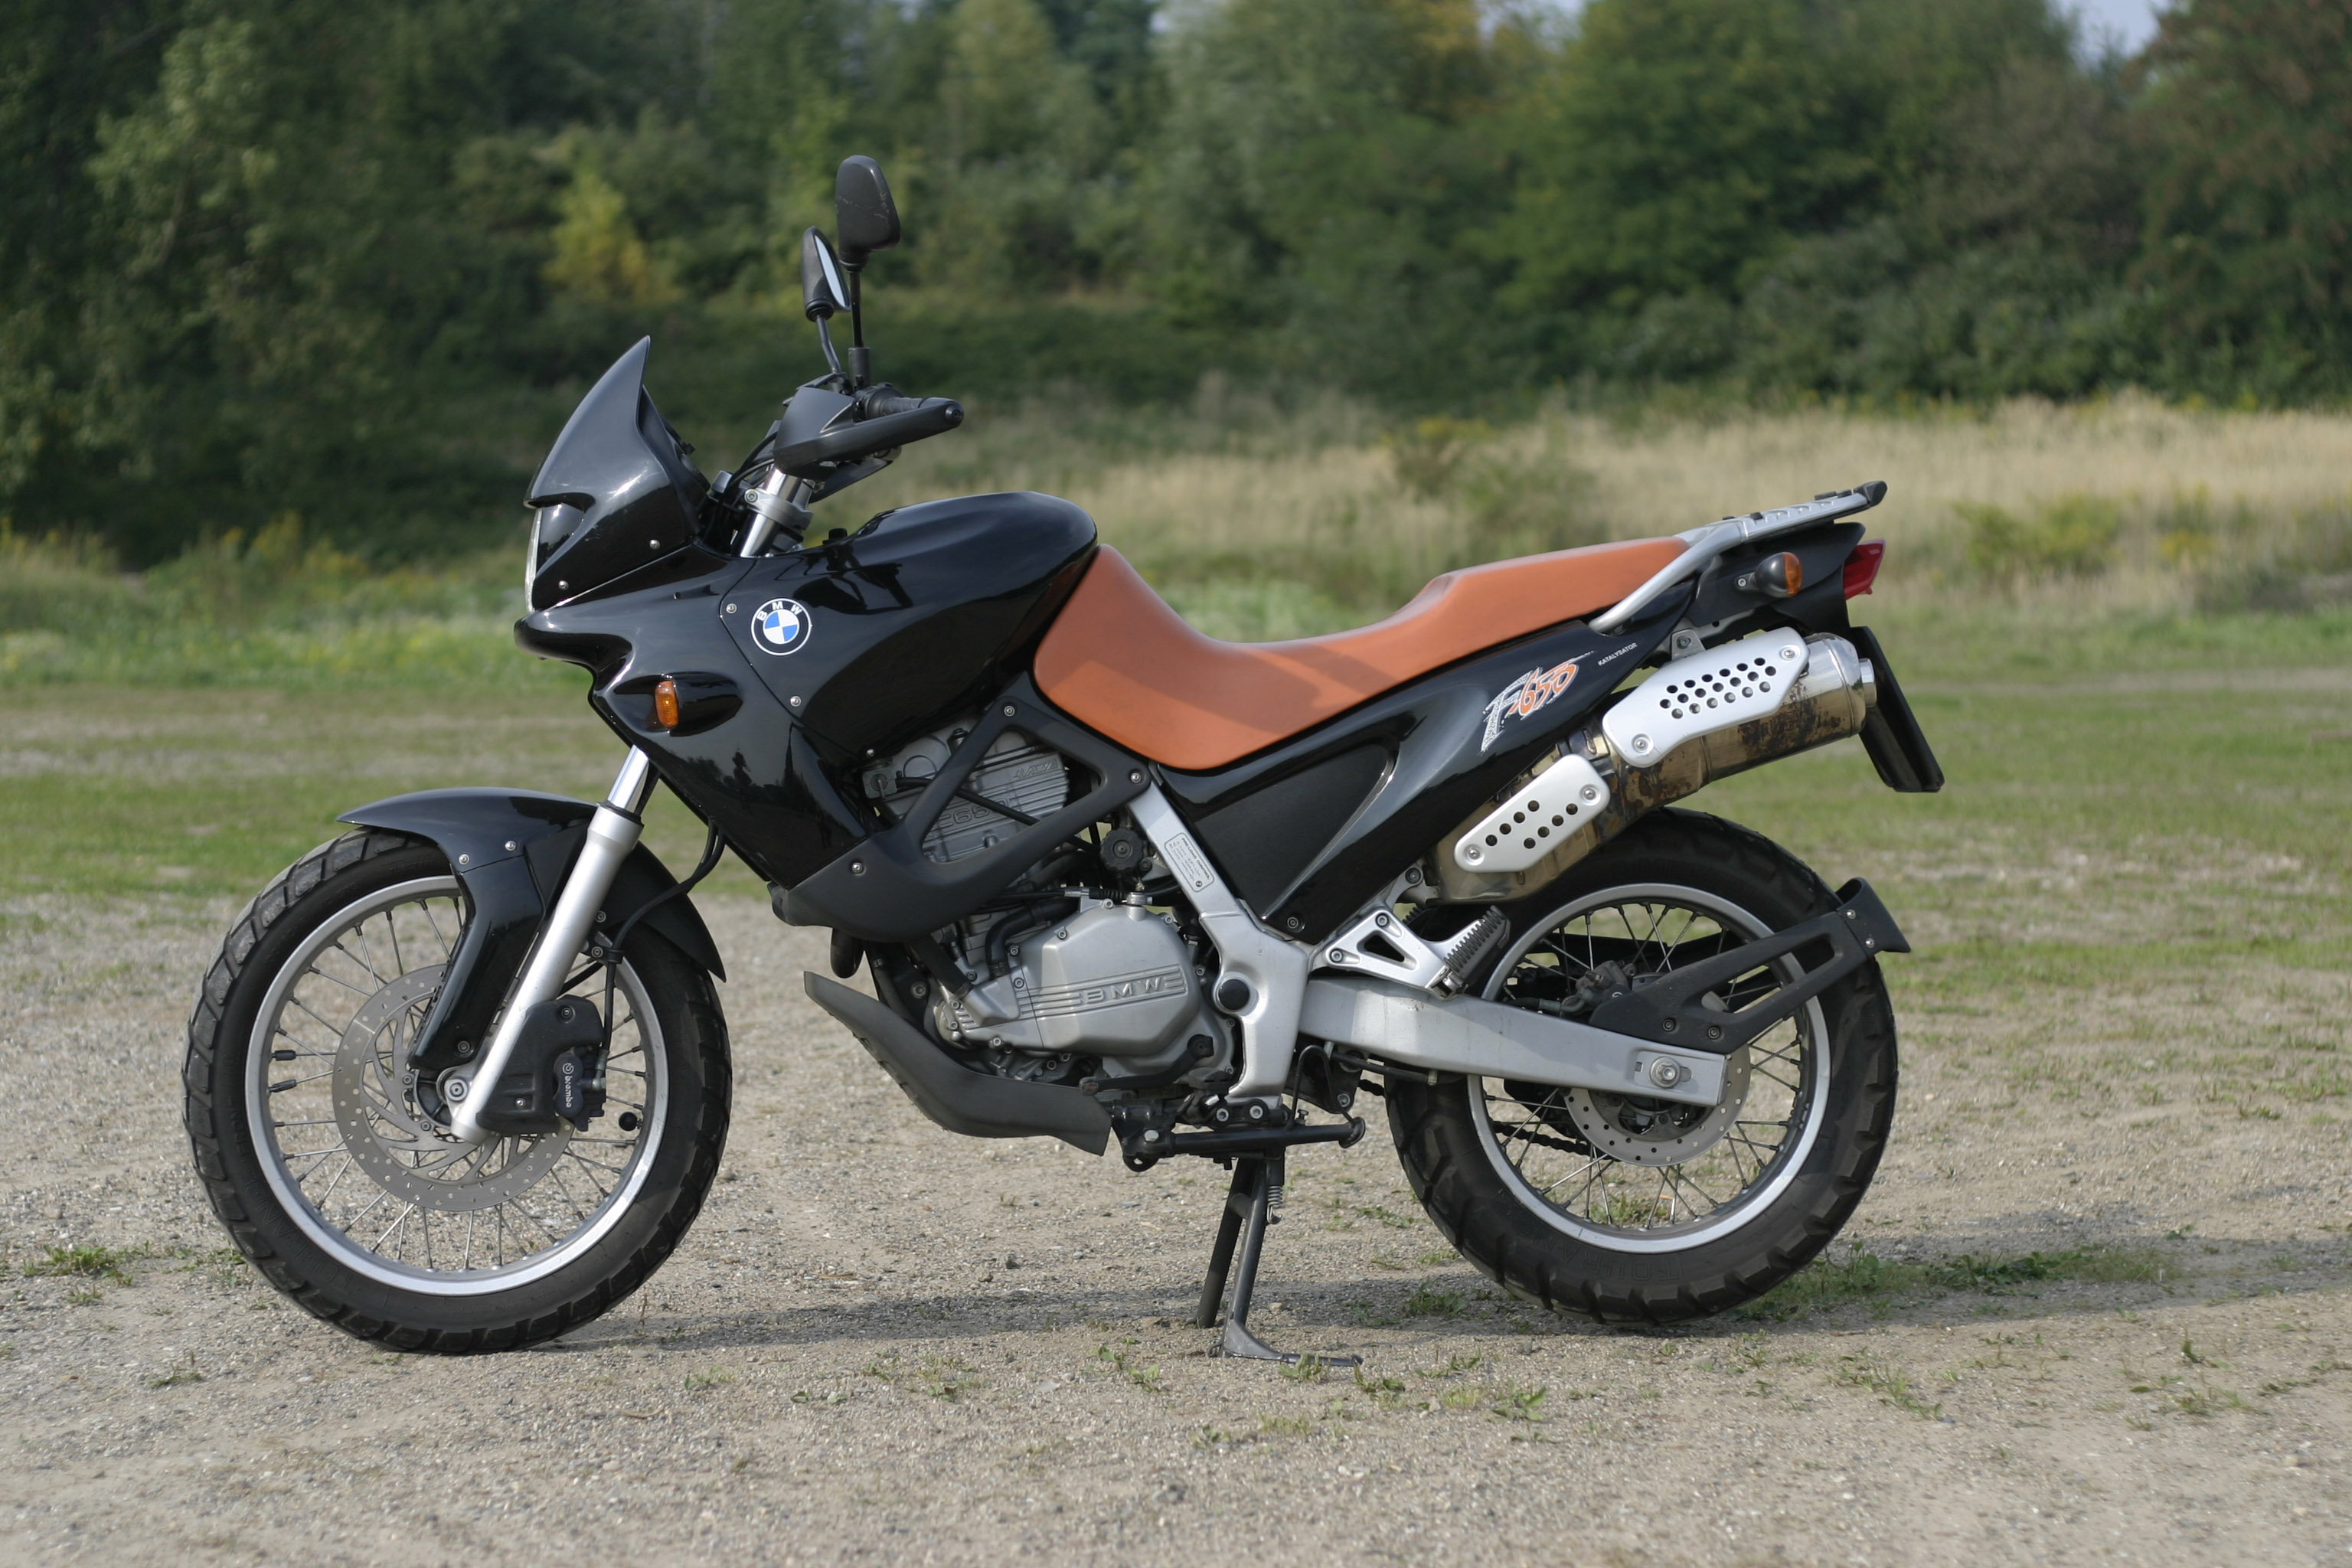 File:Motorcycle BMW f650 st 01.jpg - Wikimedia Commons